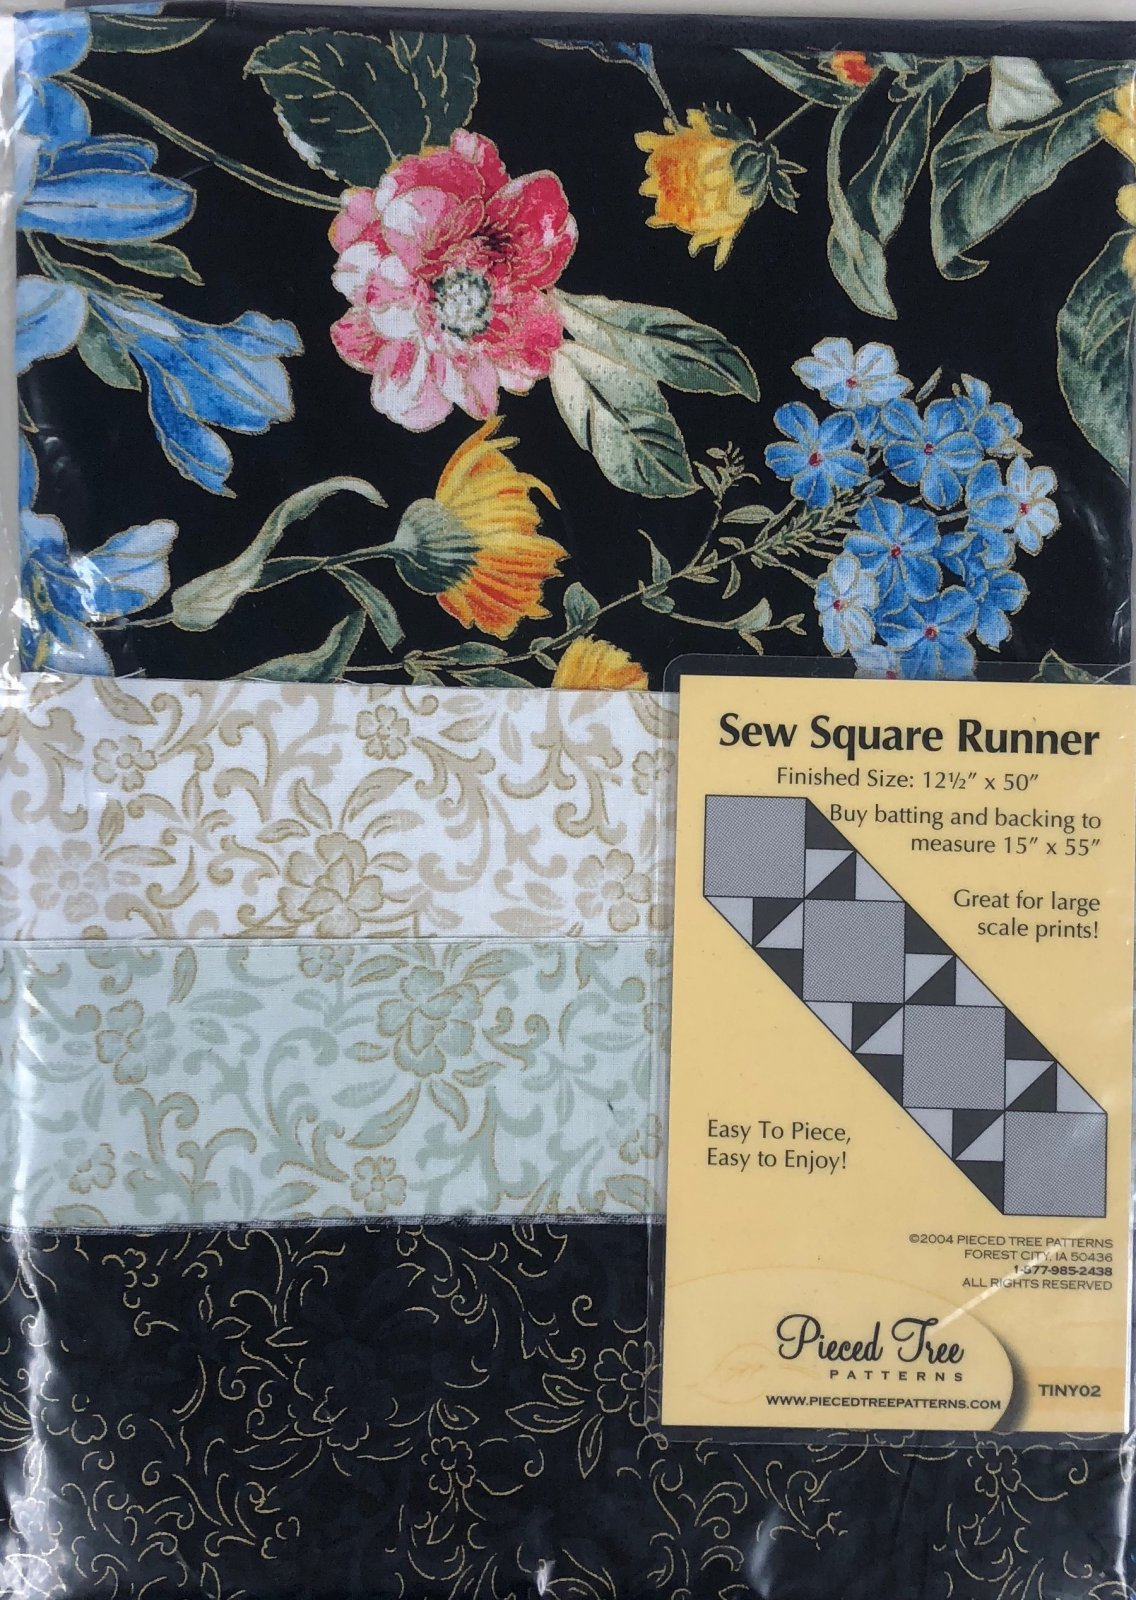 Wild Flower/Sew Square Runner Kit